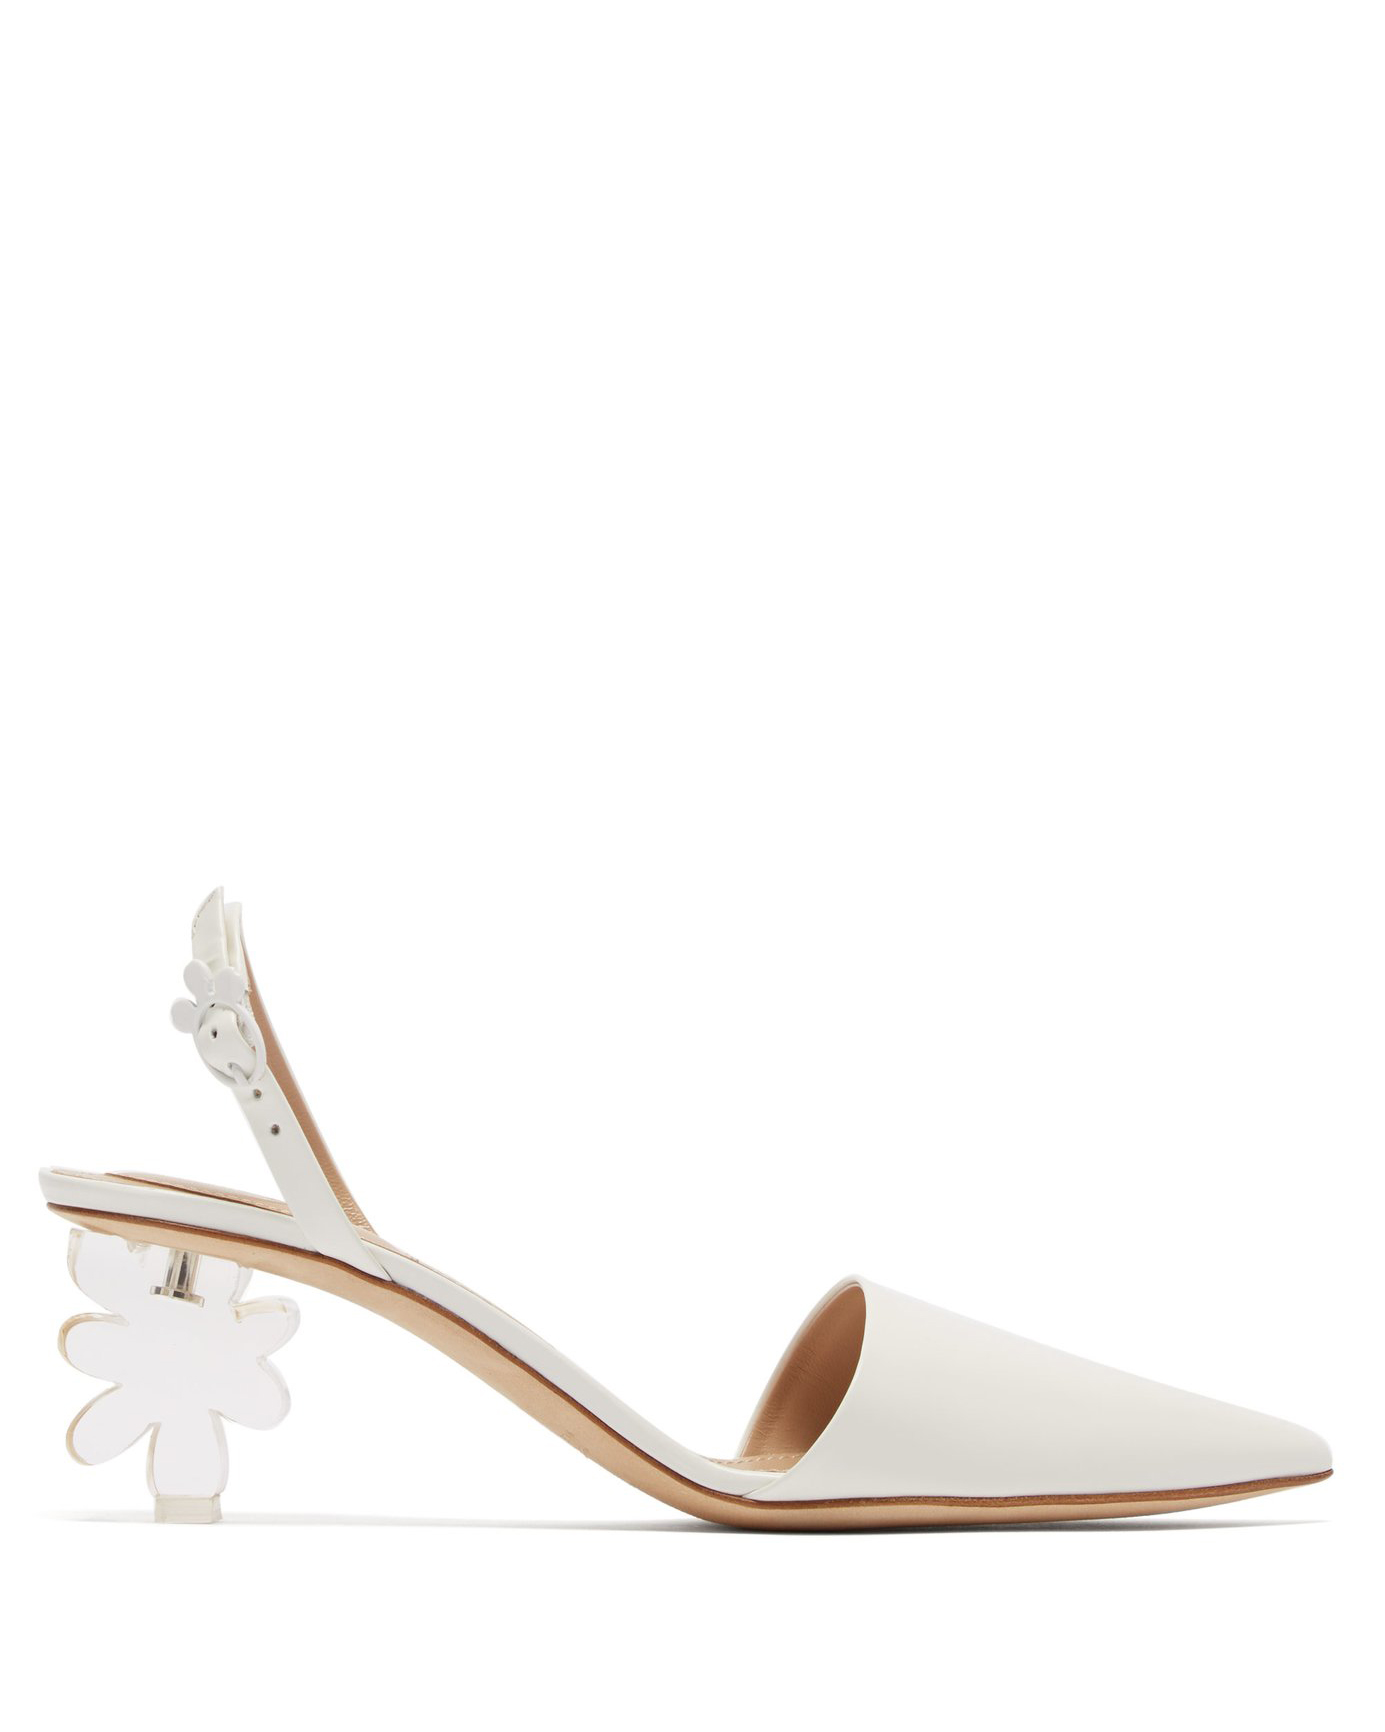 Simone Rocha Plexiglas Flower-Heel Leather Sling-Back Pumps